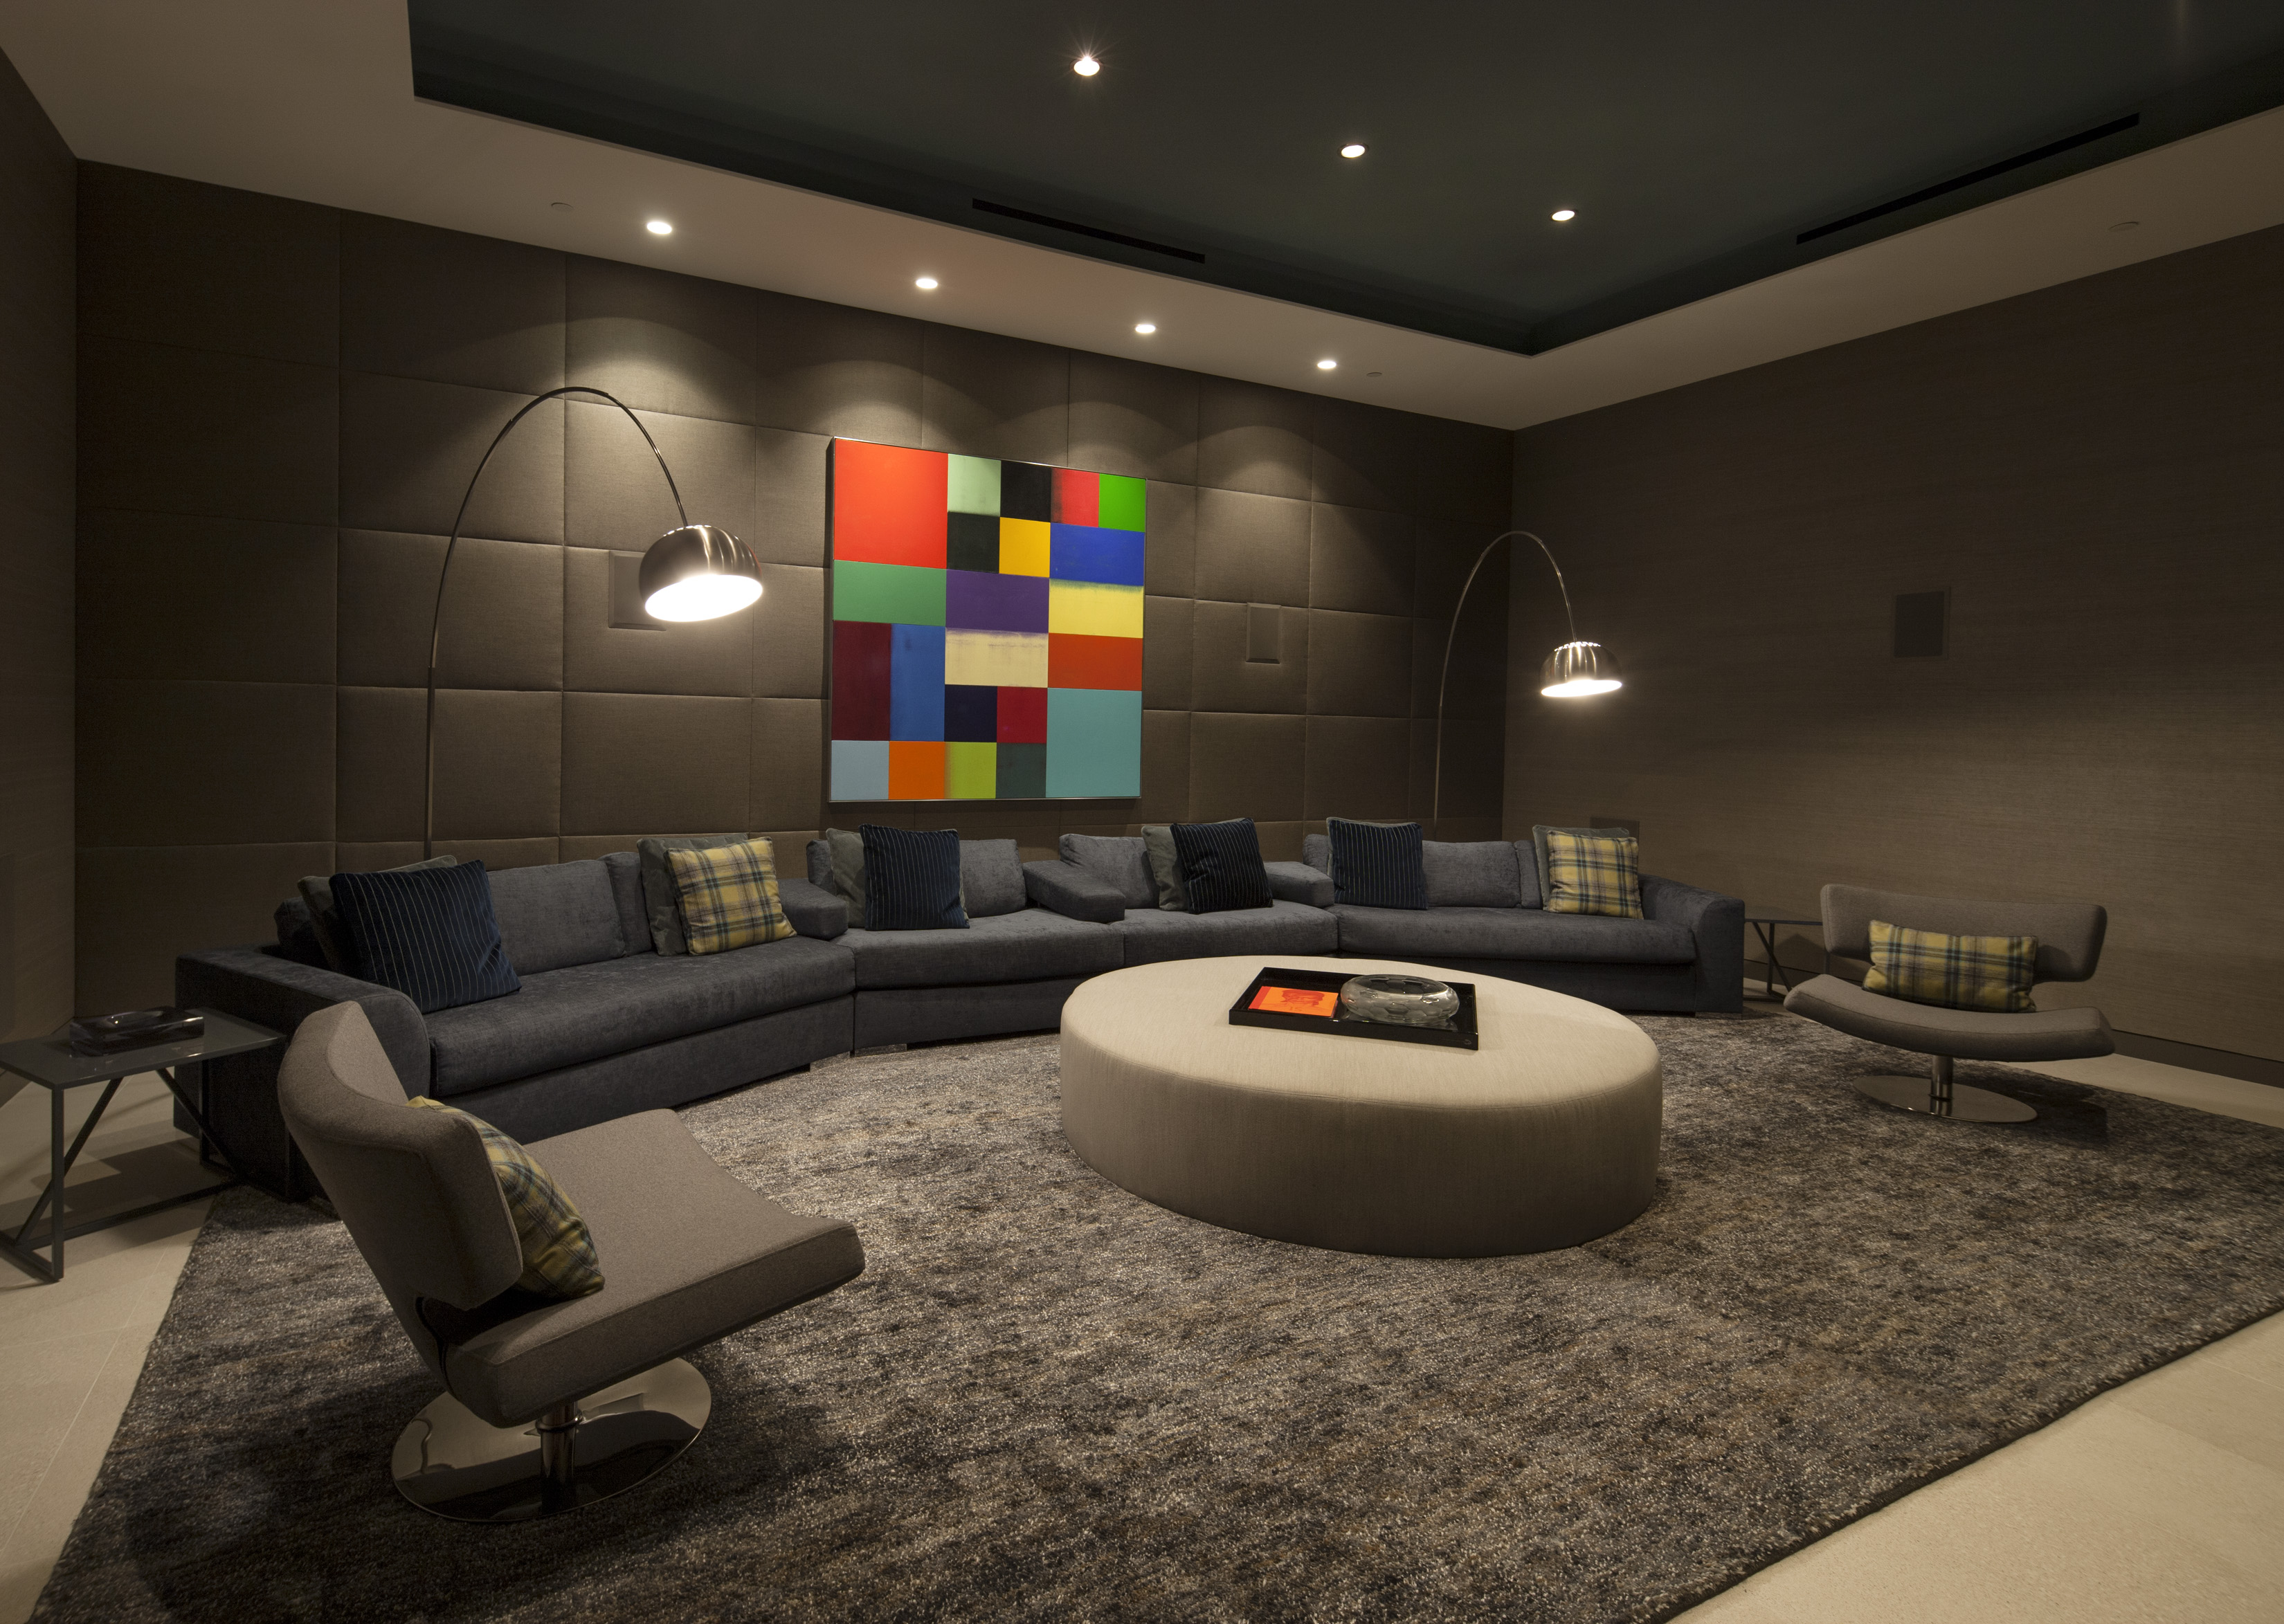 Home cinema room interior design ideas for Decorations cuisine maison